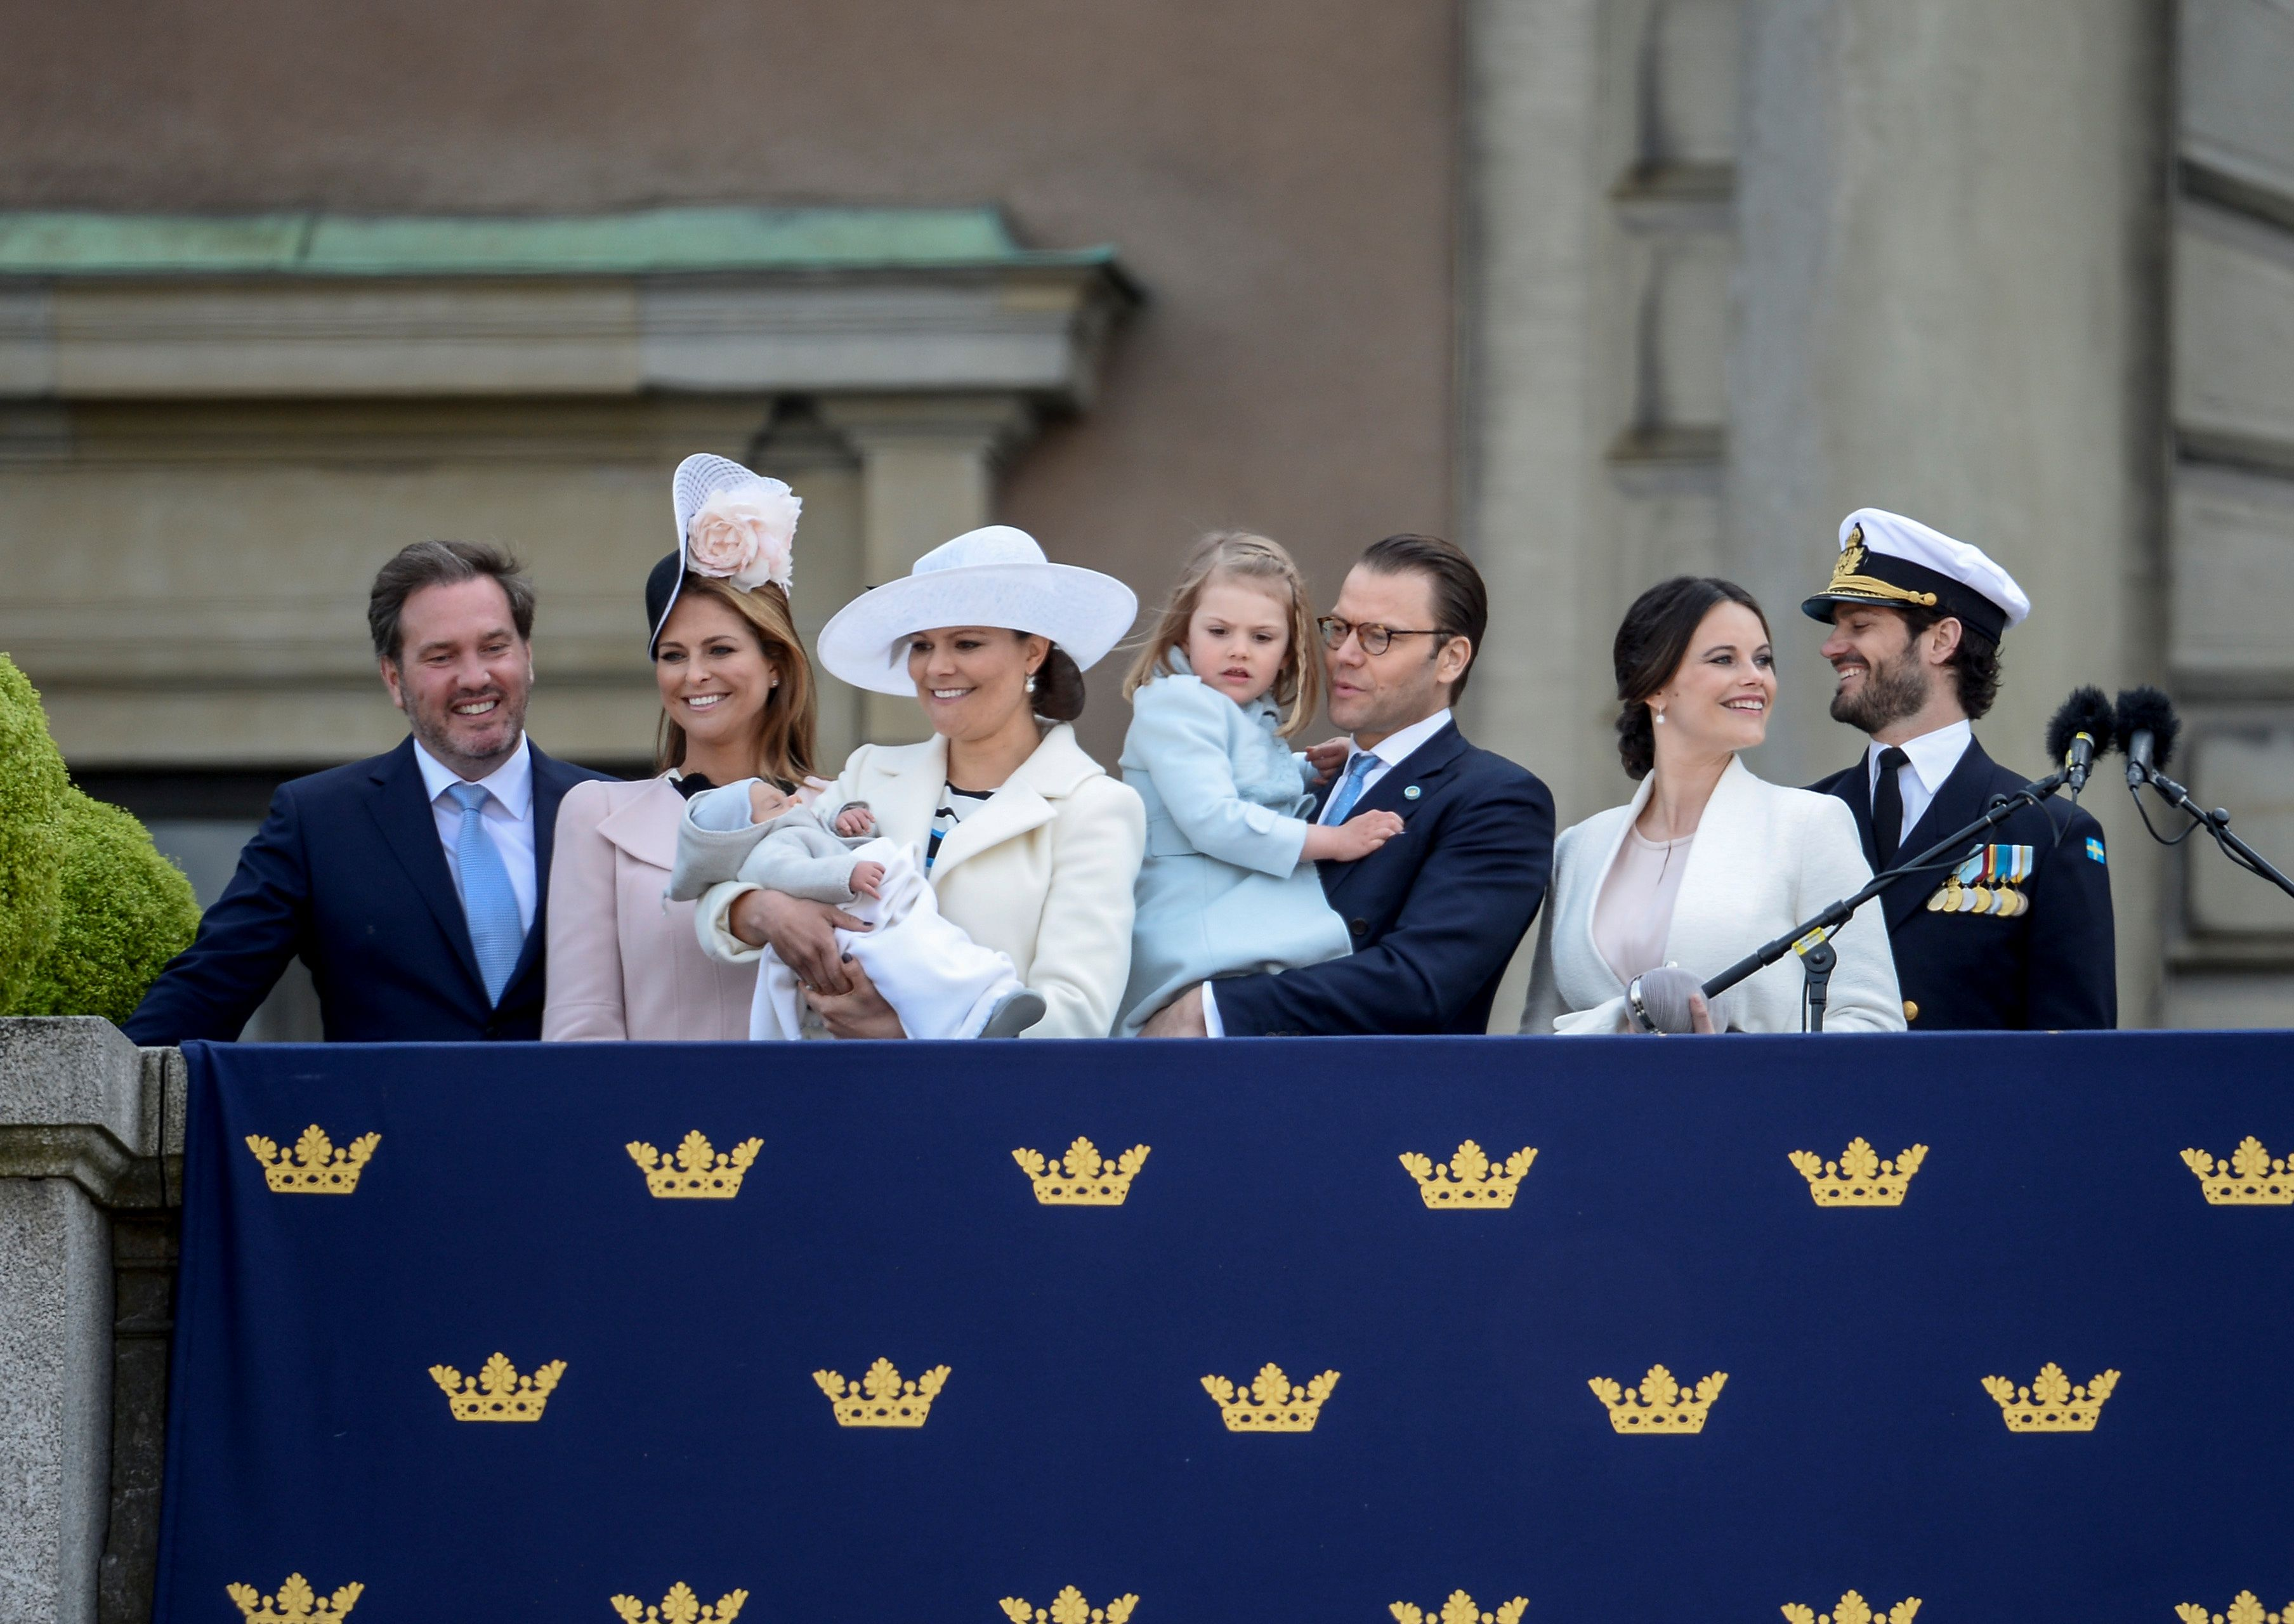 Princess Sofia of Sweden makes first appearance after giving birth to her son Prince Alexander.